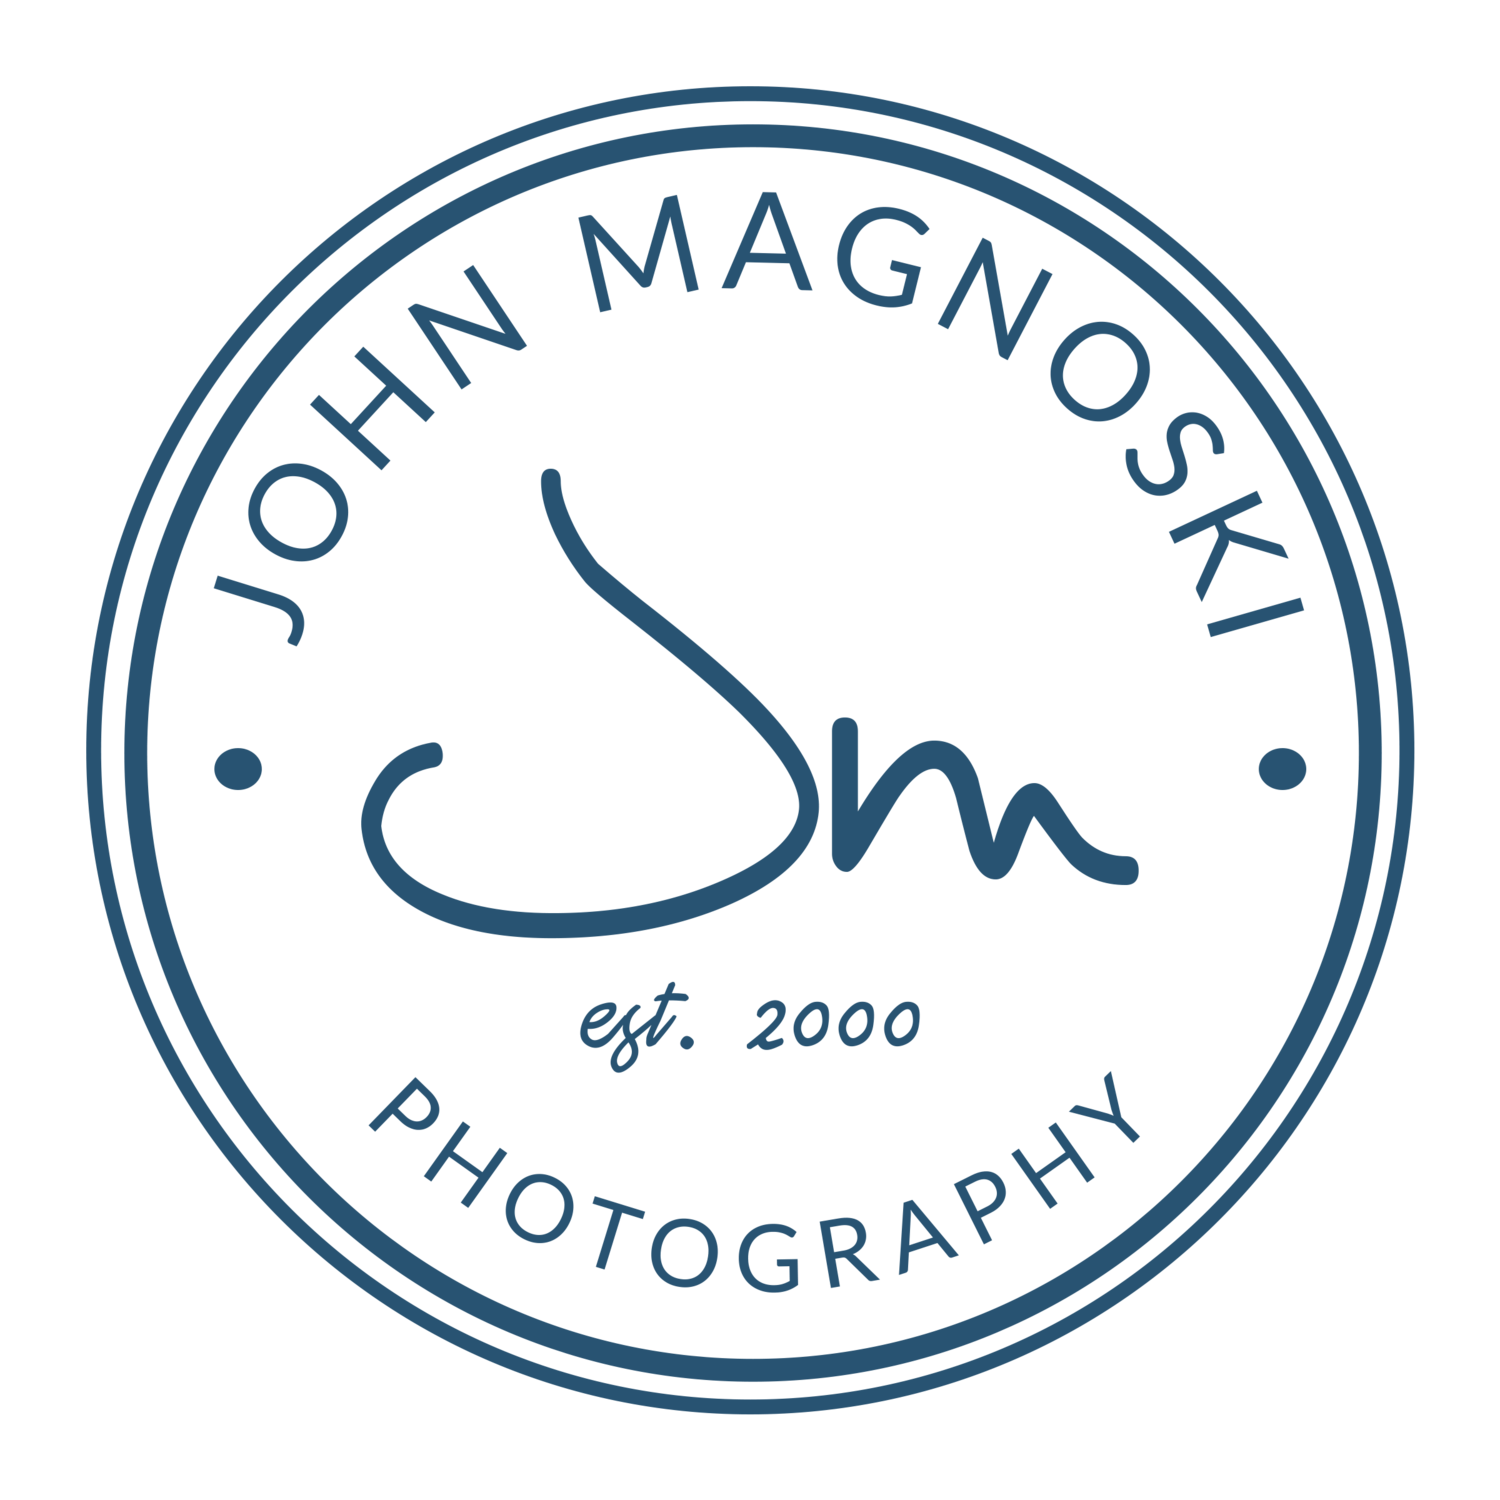 John Magnoski Photography